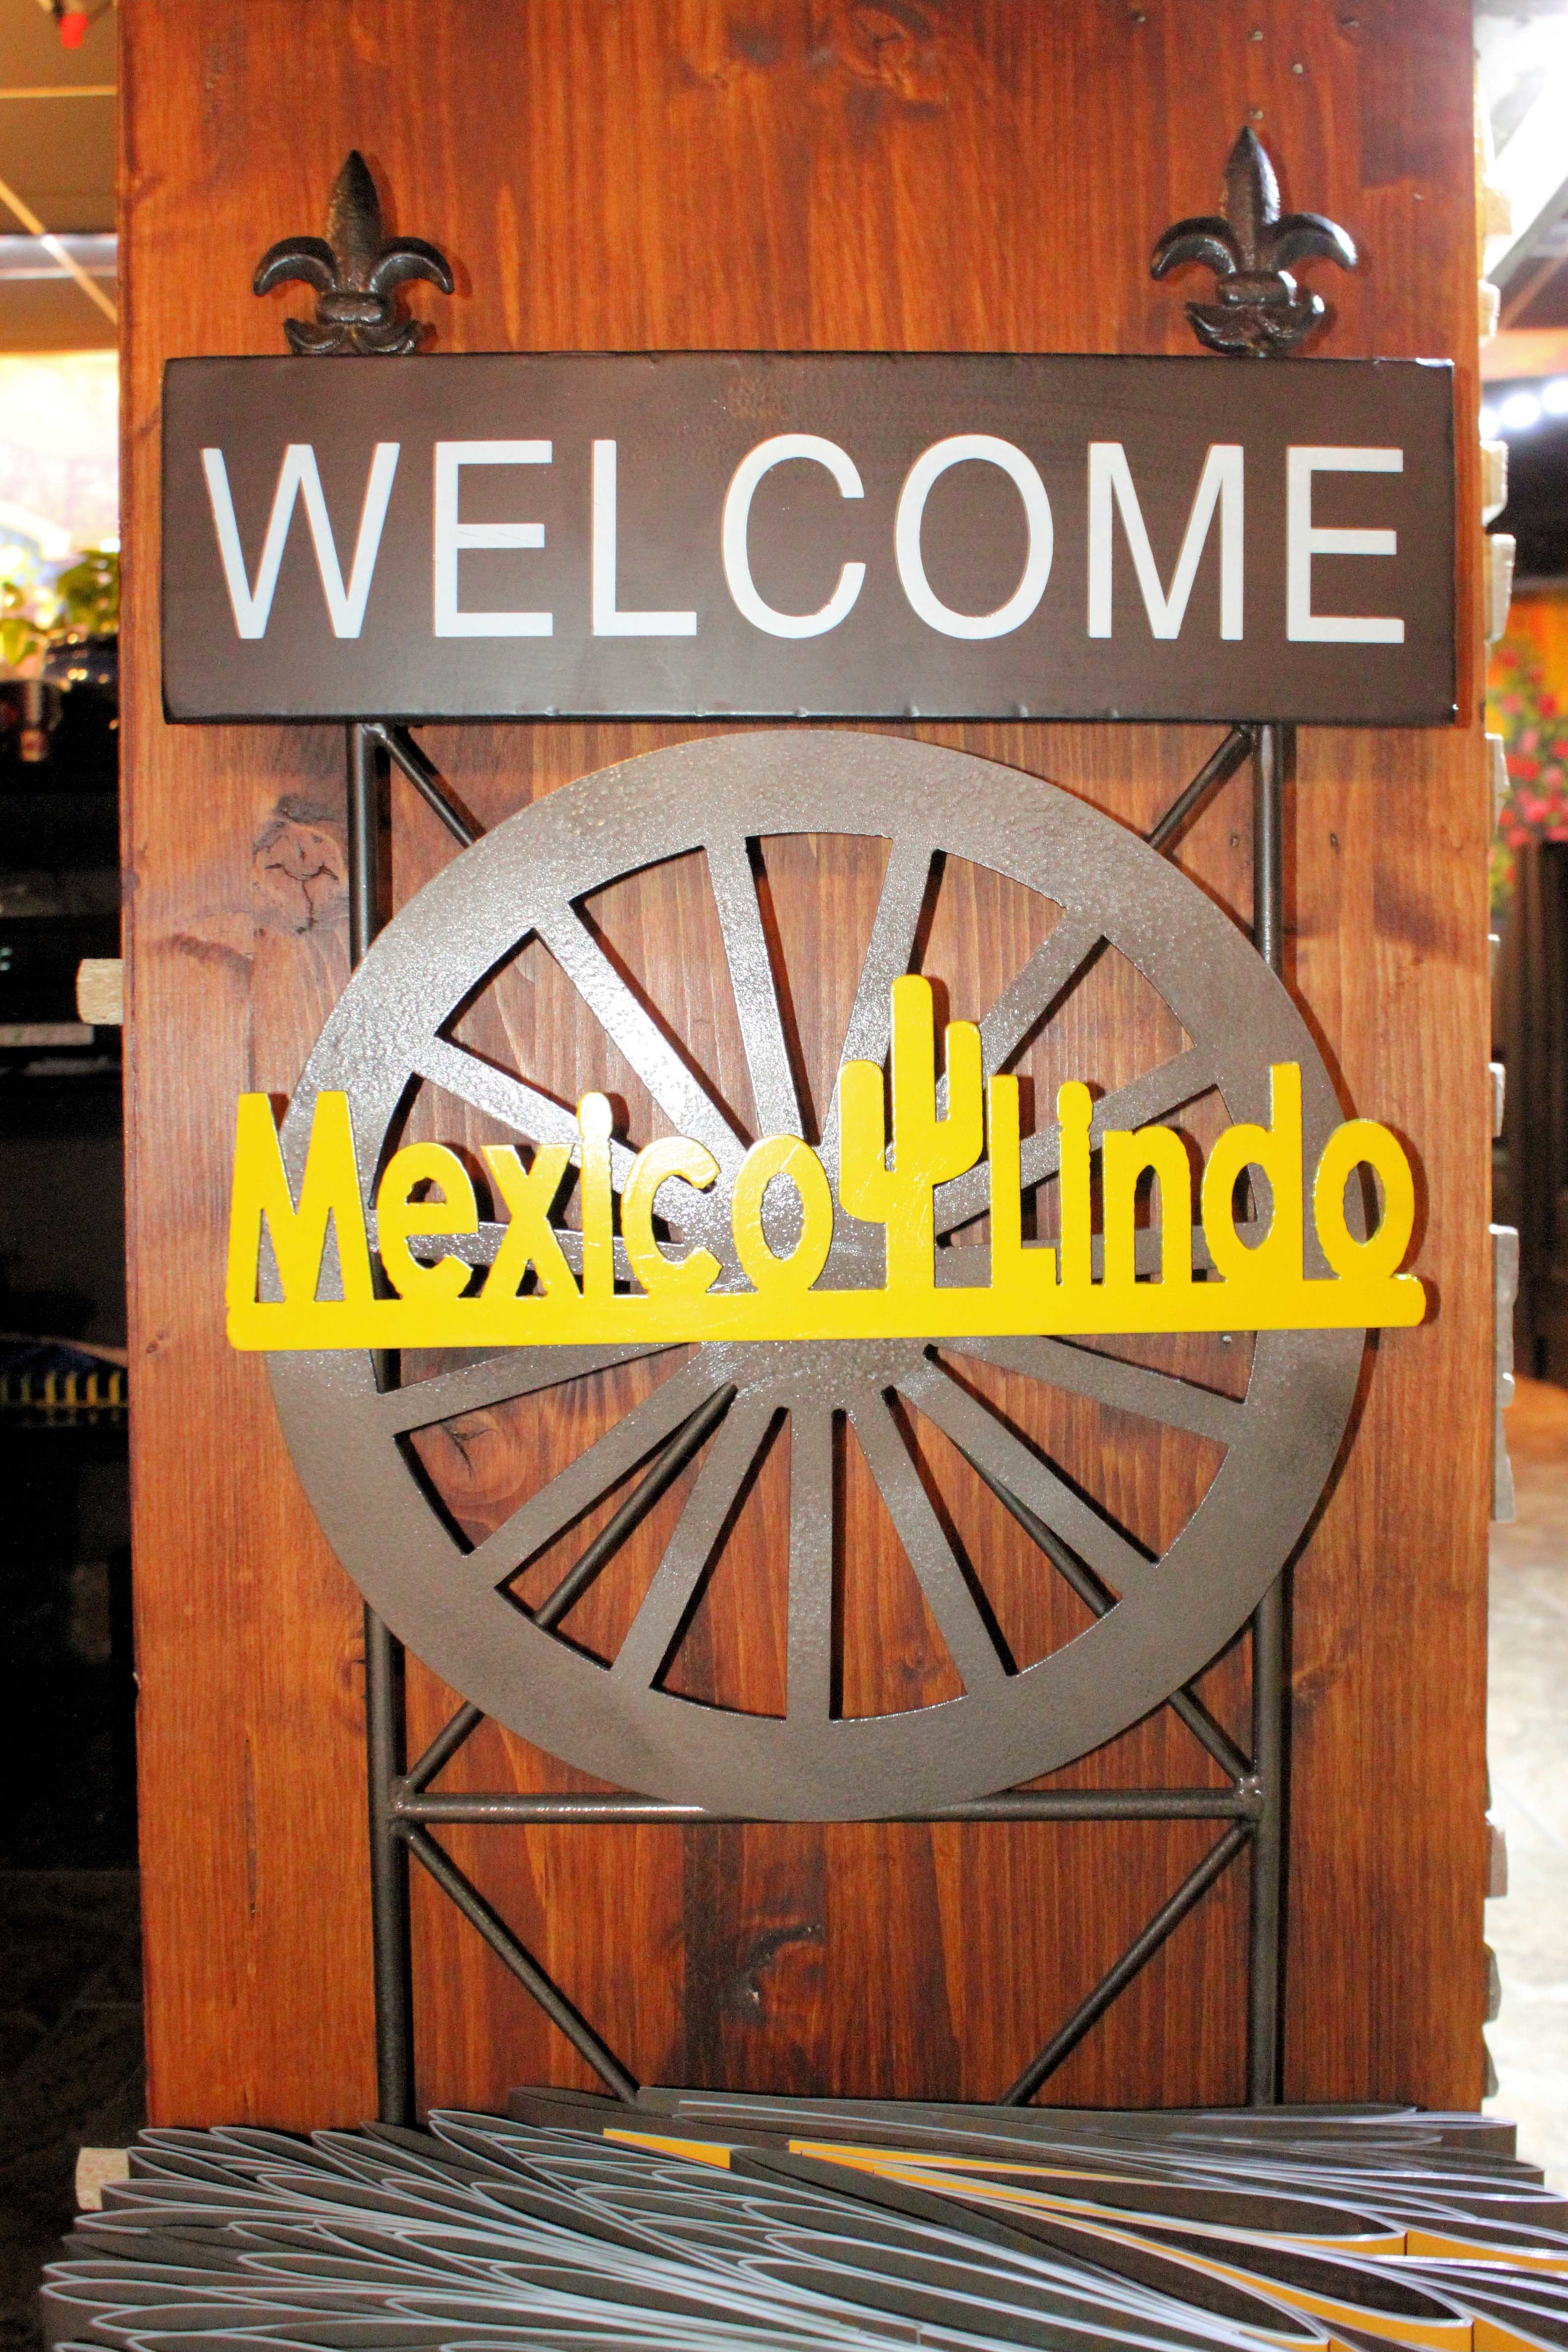 Mexico Lindo Mexican Restaurant Bar and Grill image 3